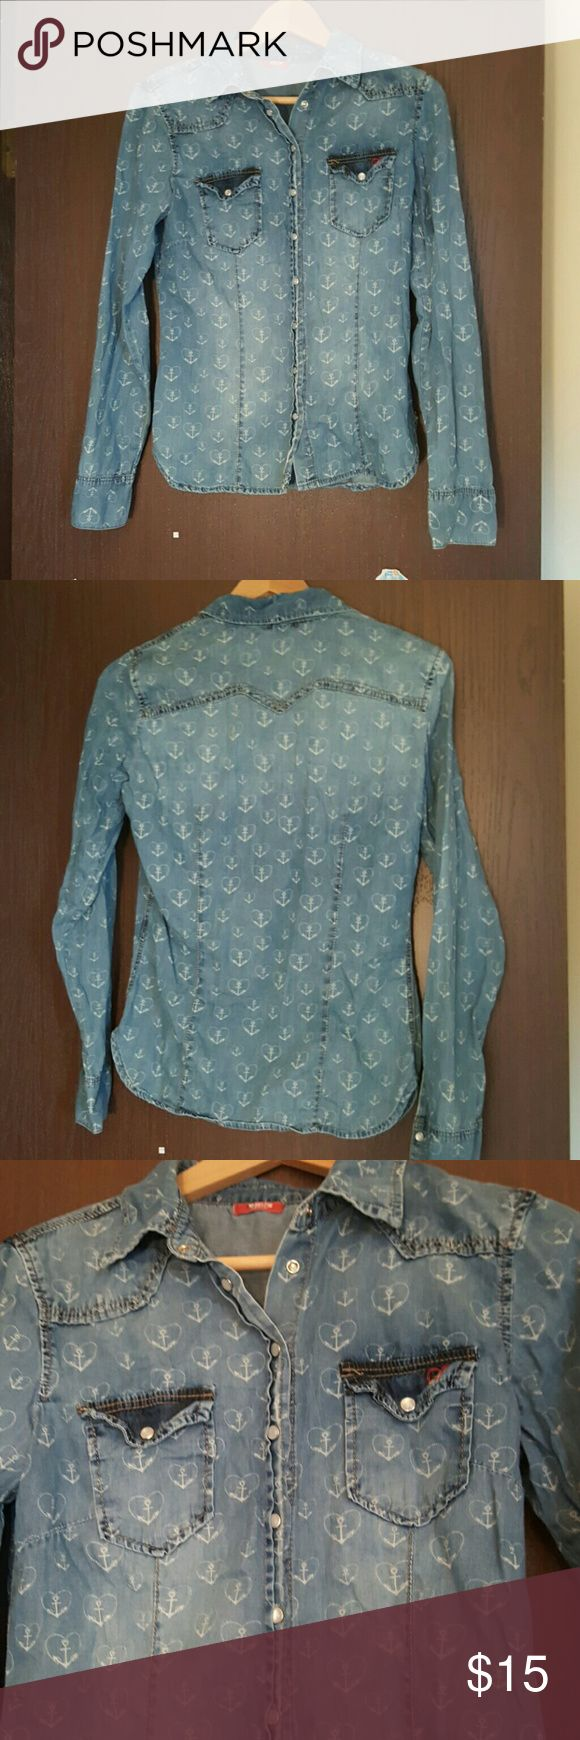 Denim shirt for women Denim shirt with anchor print. Good for cold Springs and Summers evenings. Thin fabric. Very good condition. Tops Button Down Shirts